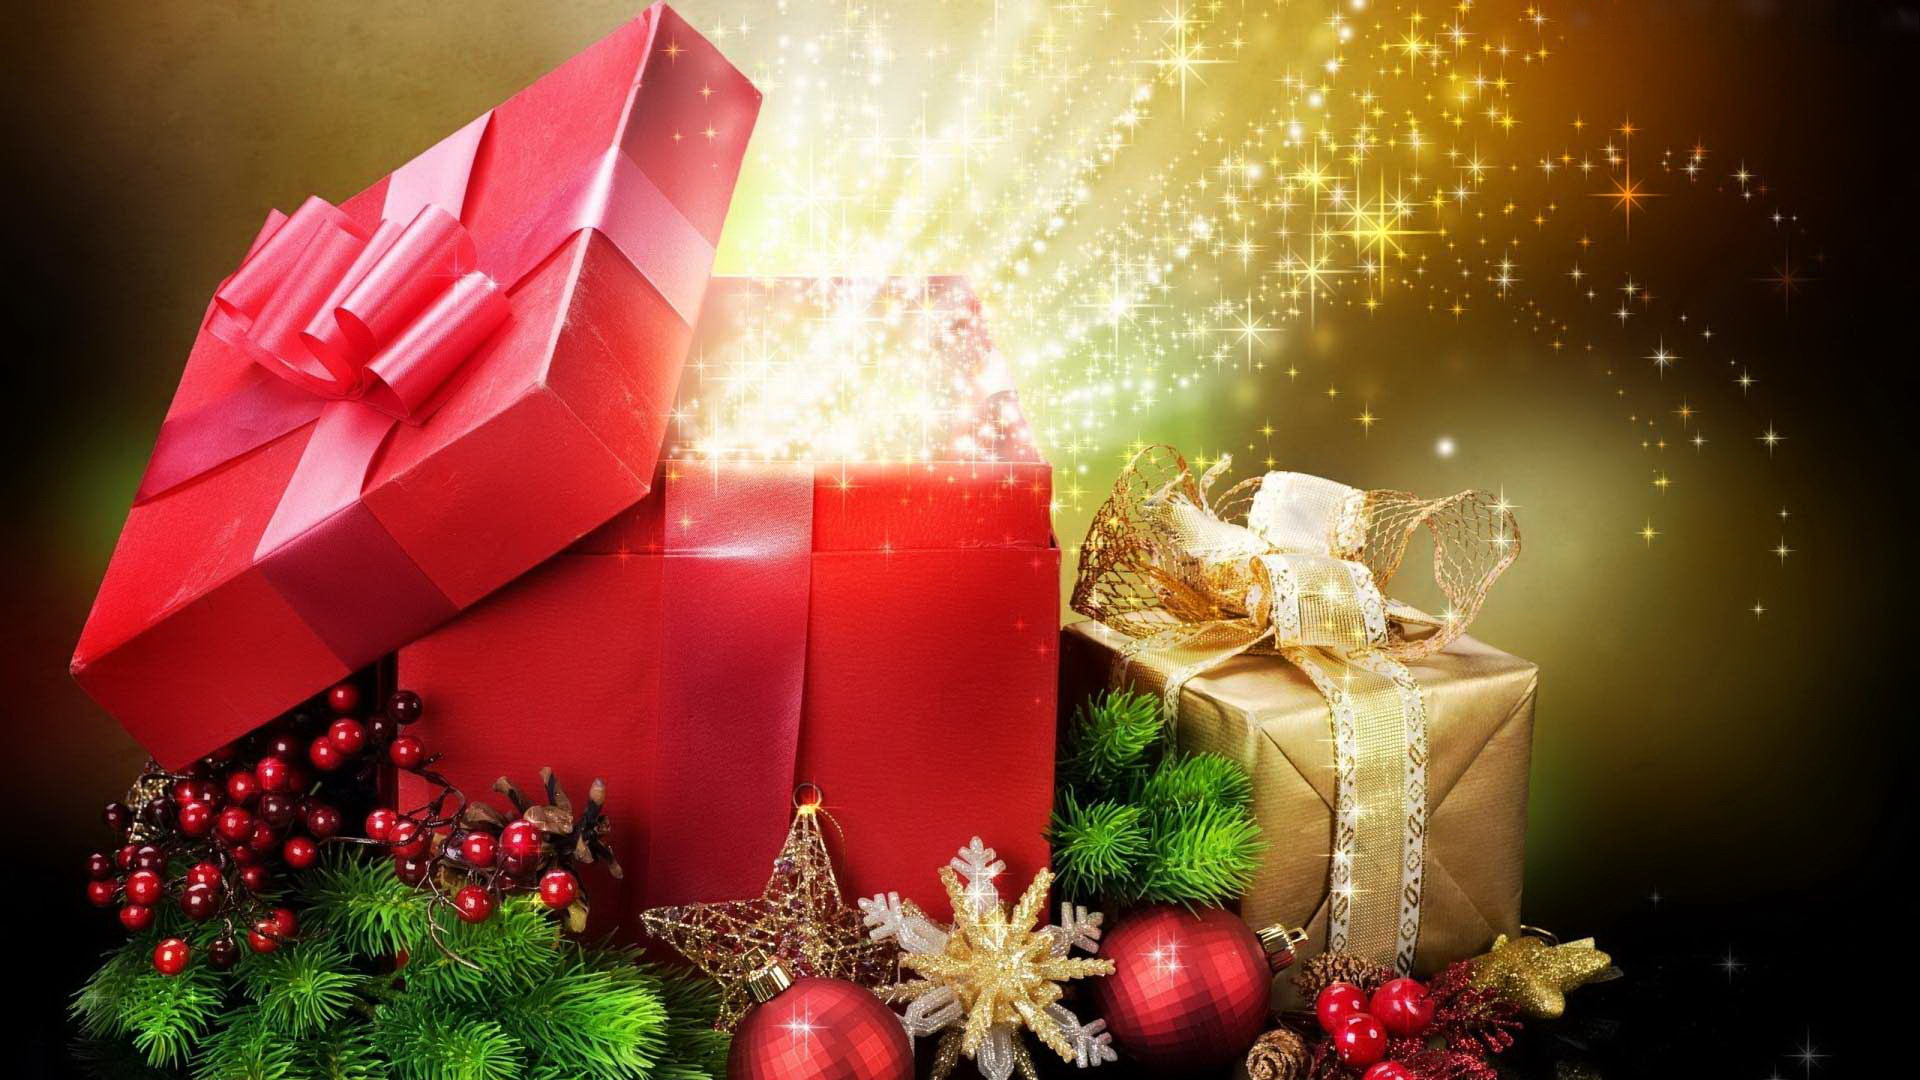 hd-wallpaper-christmas-gifts